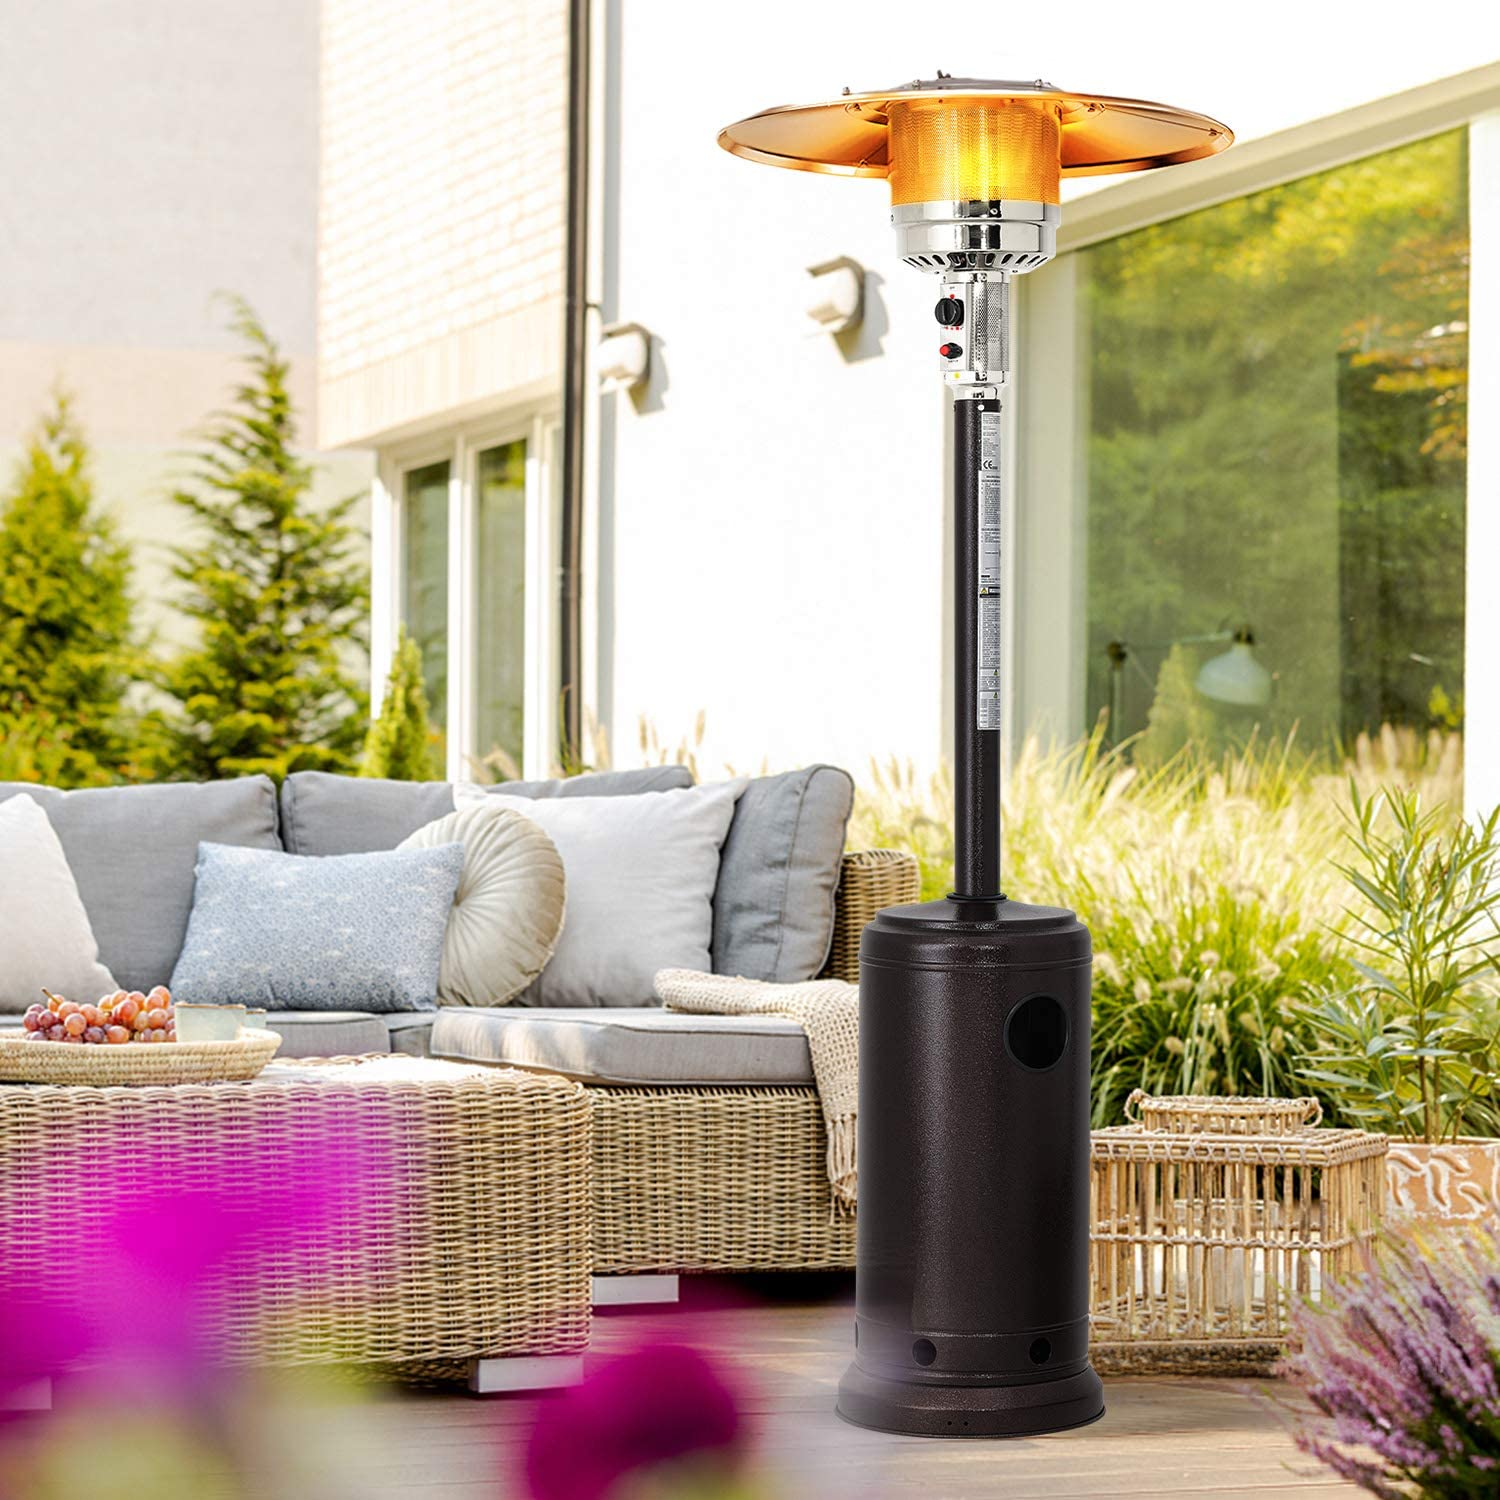 Patiomore Outdoor Tall Propane Heater